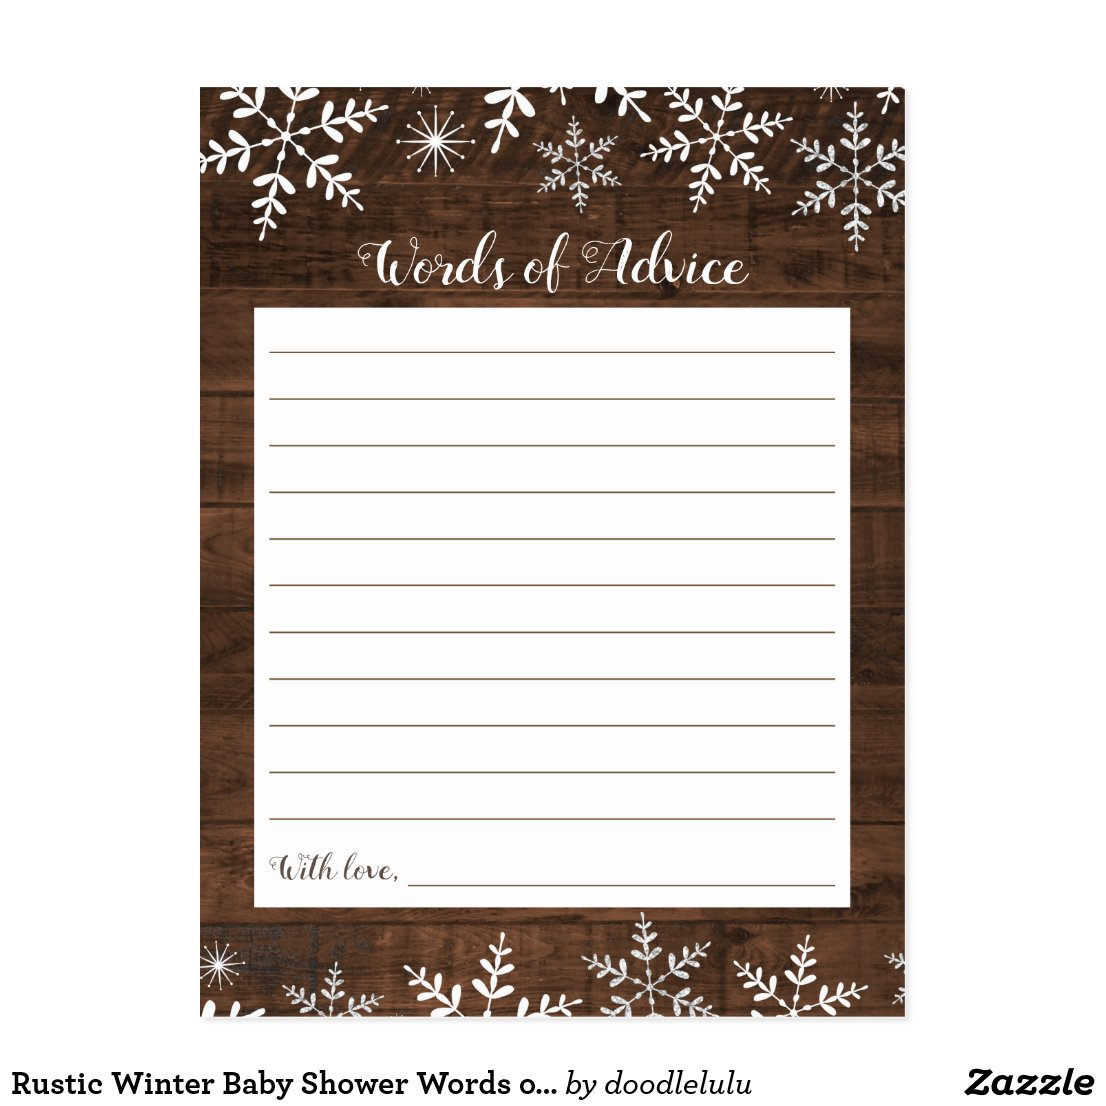 Rustic Winter Baby Shower Words of Advice Snow Postcard